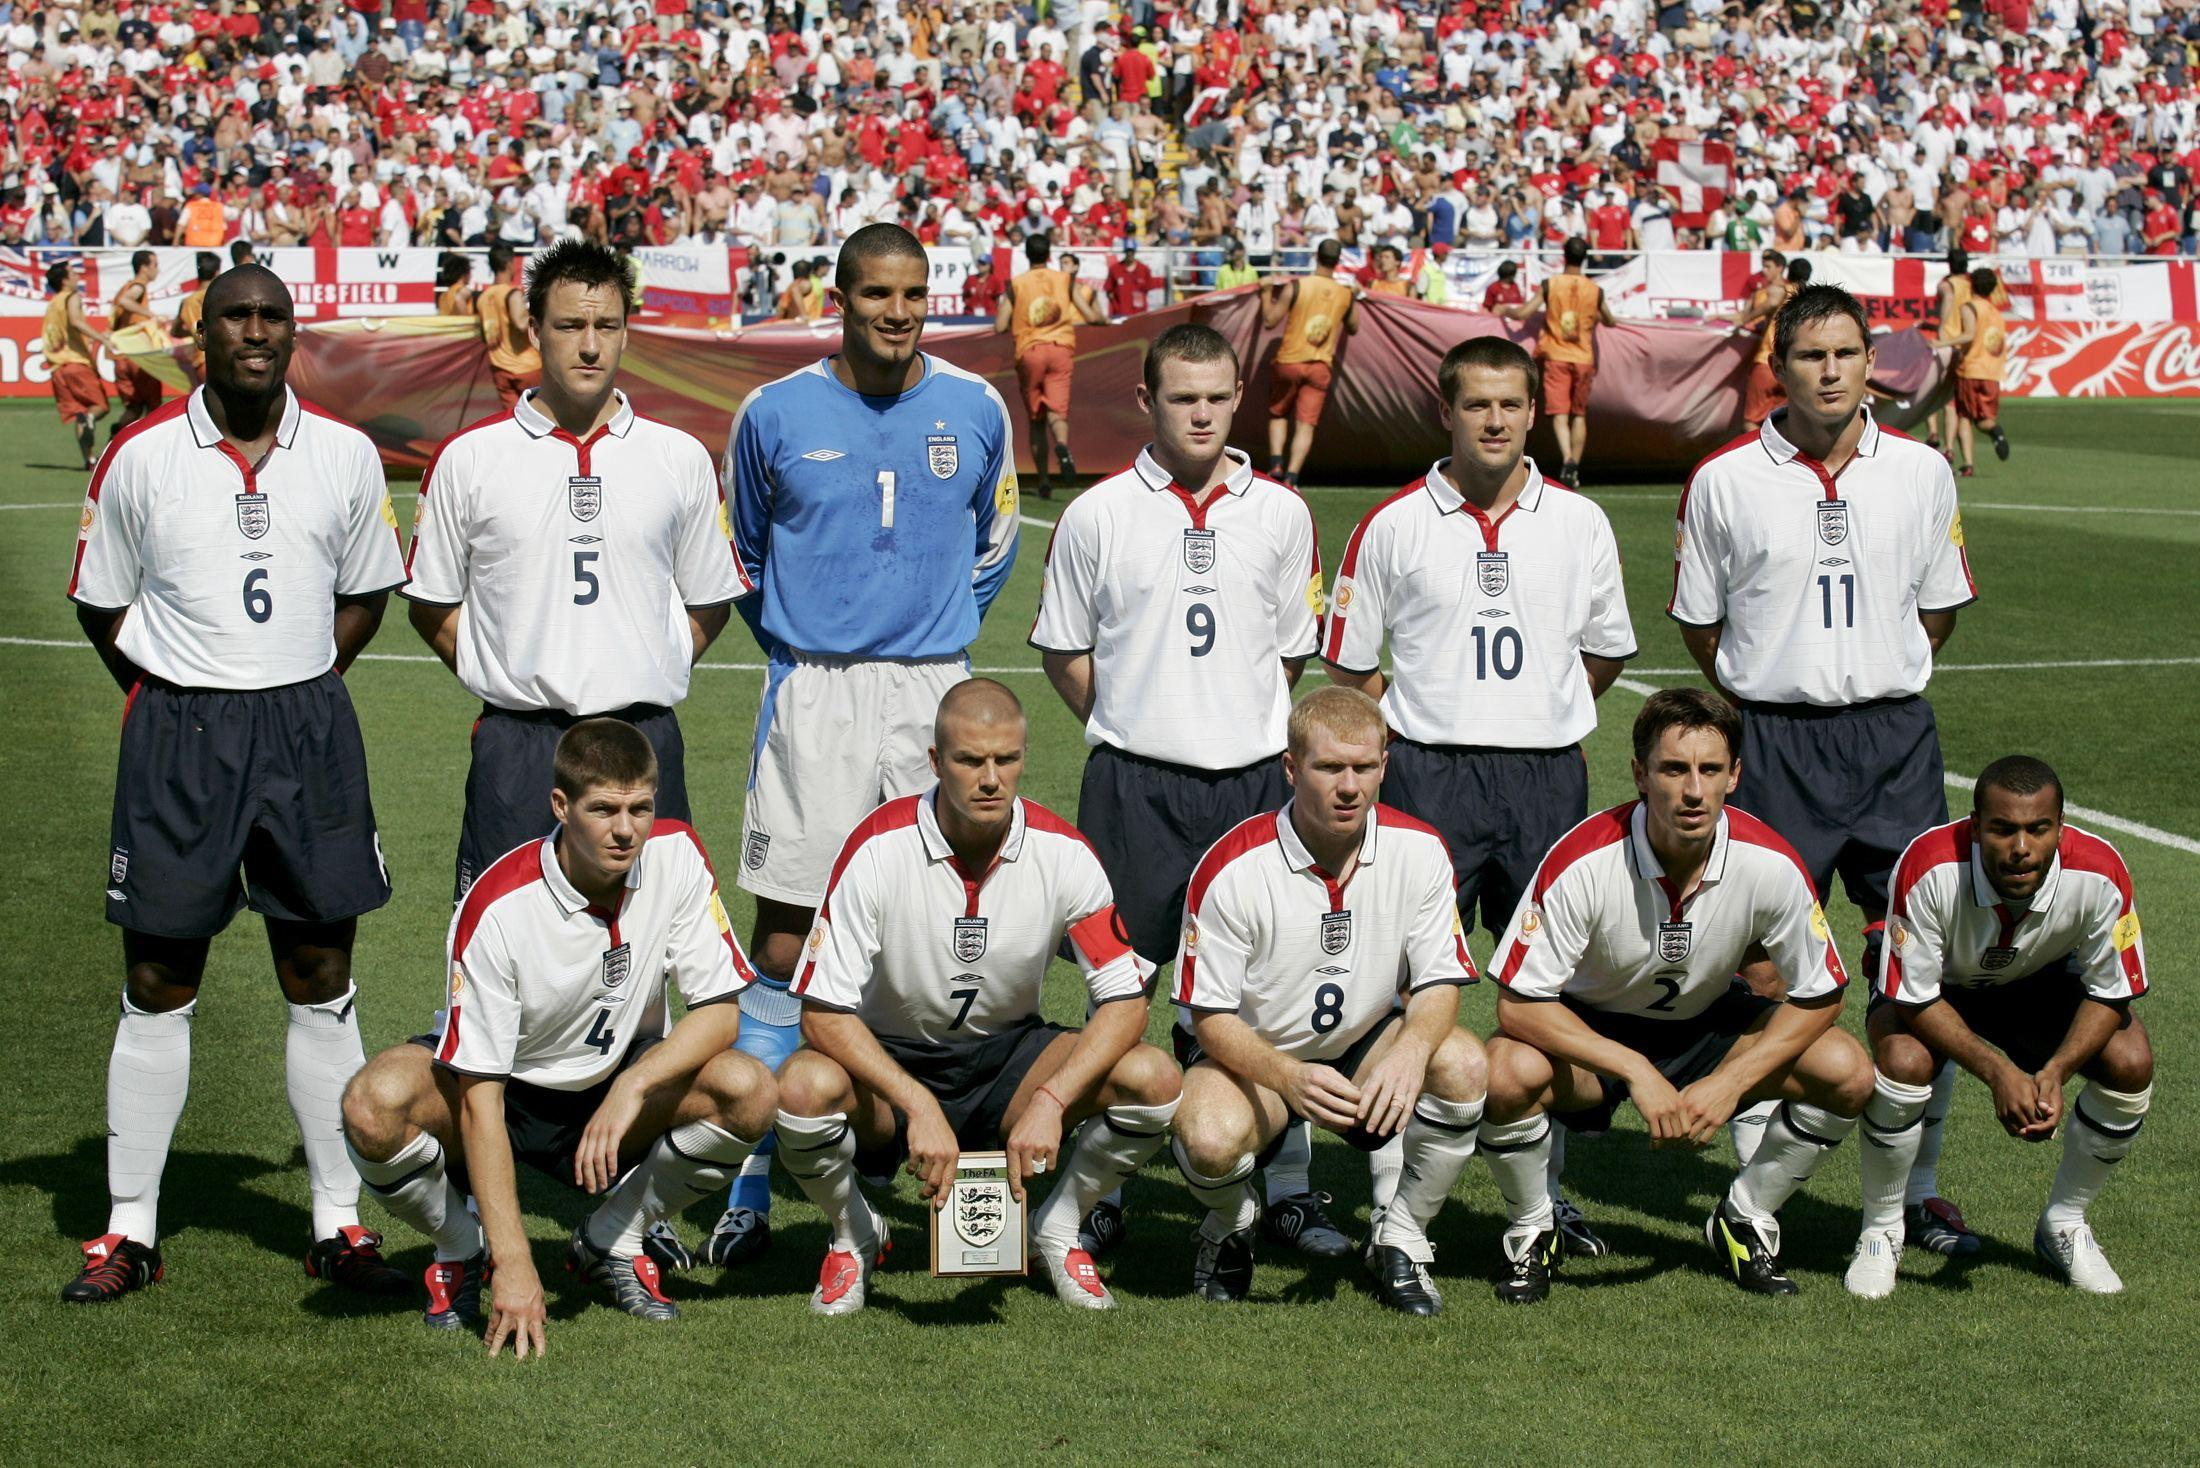 England's line up against Switzerland at Euro 2004